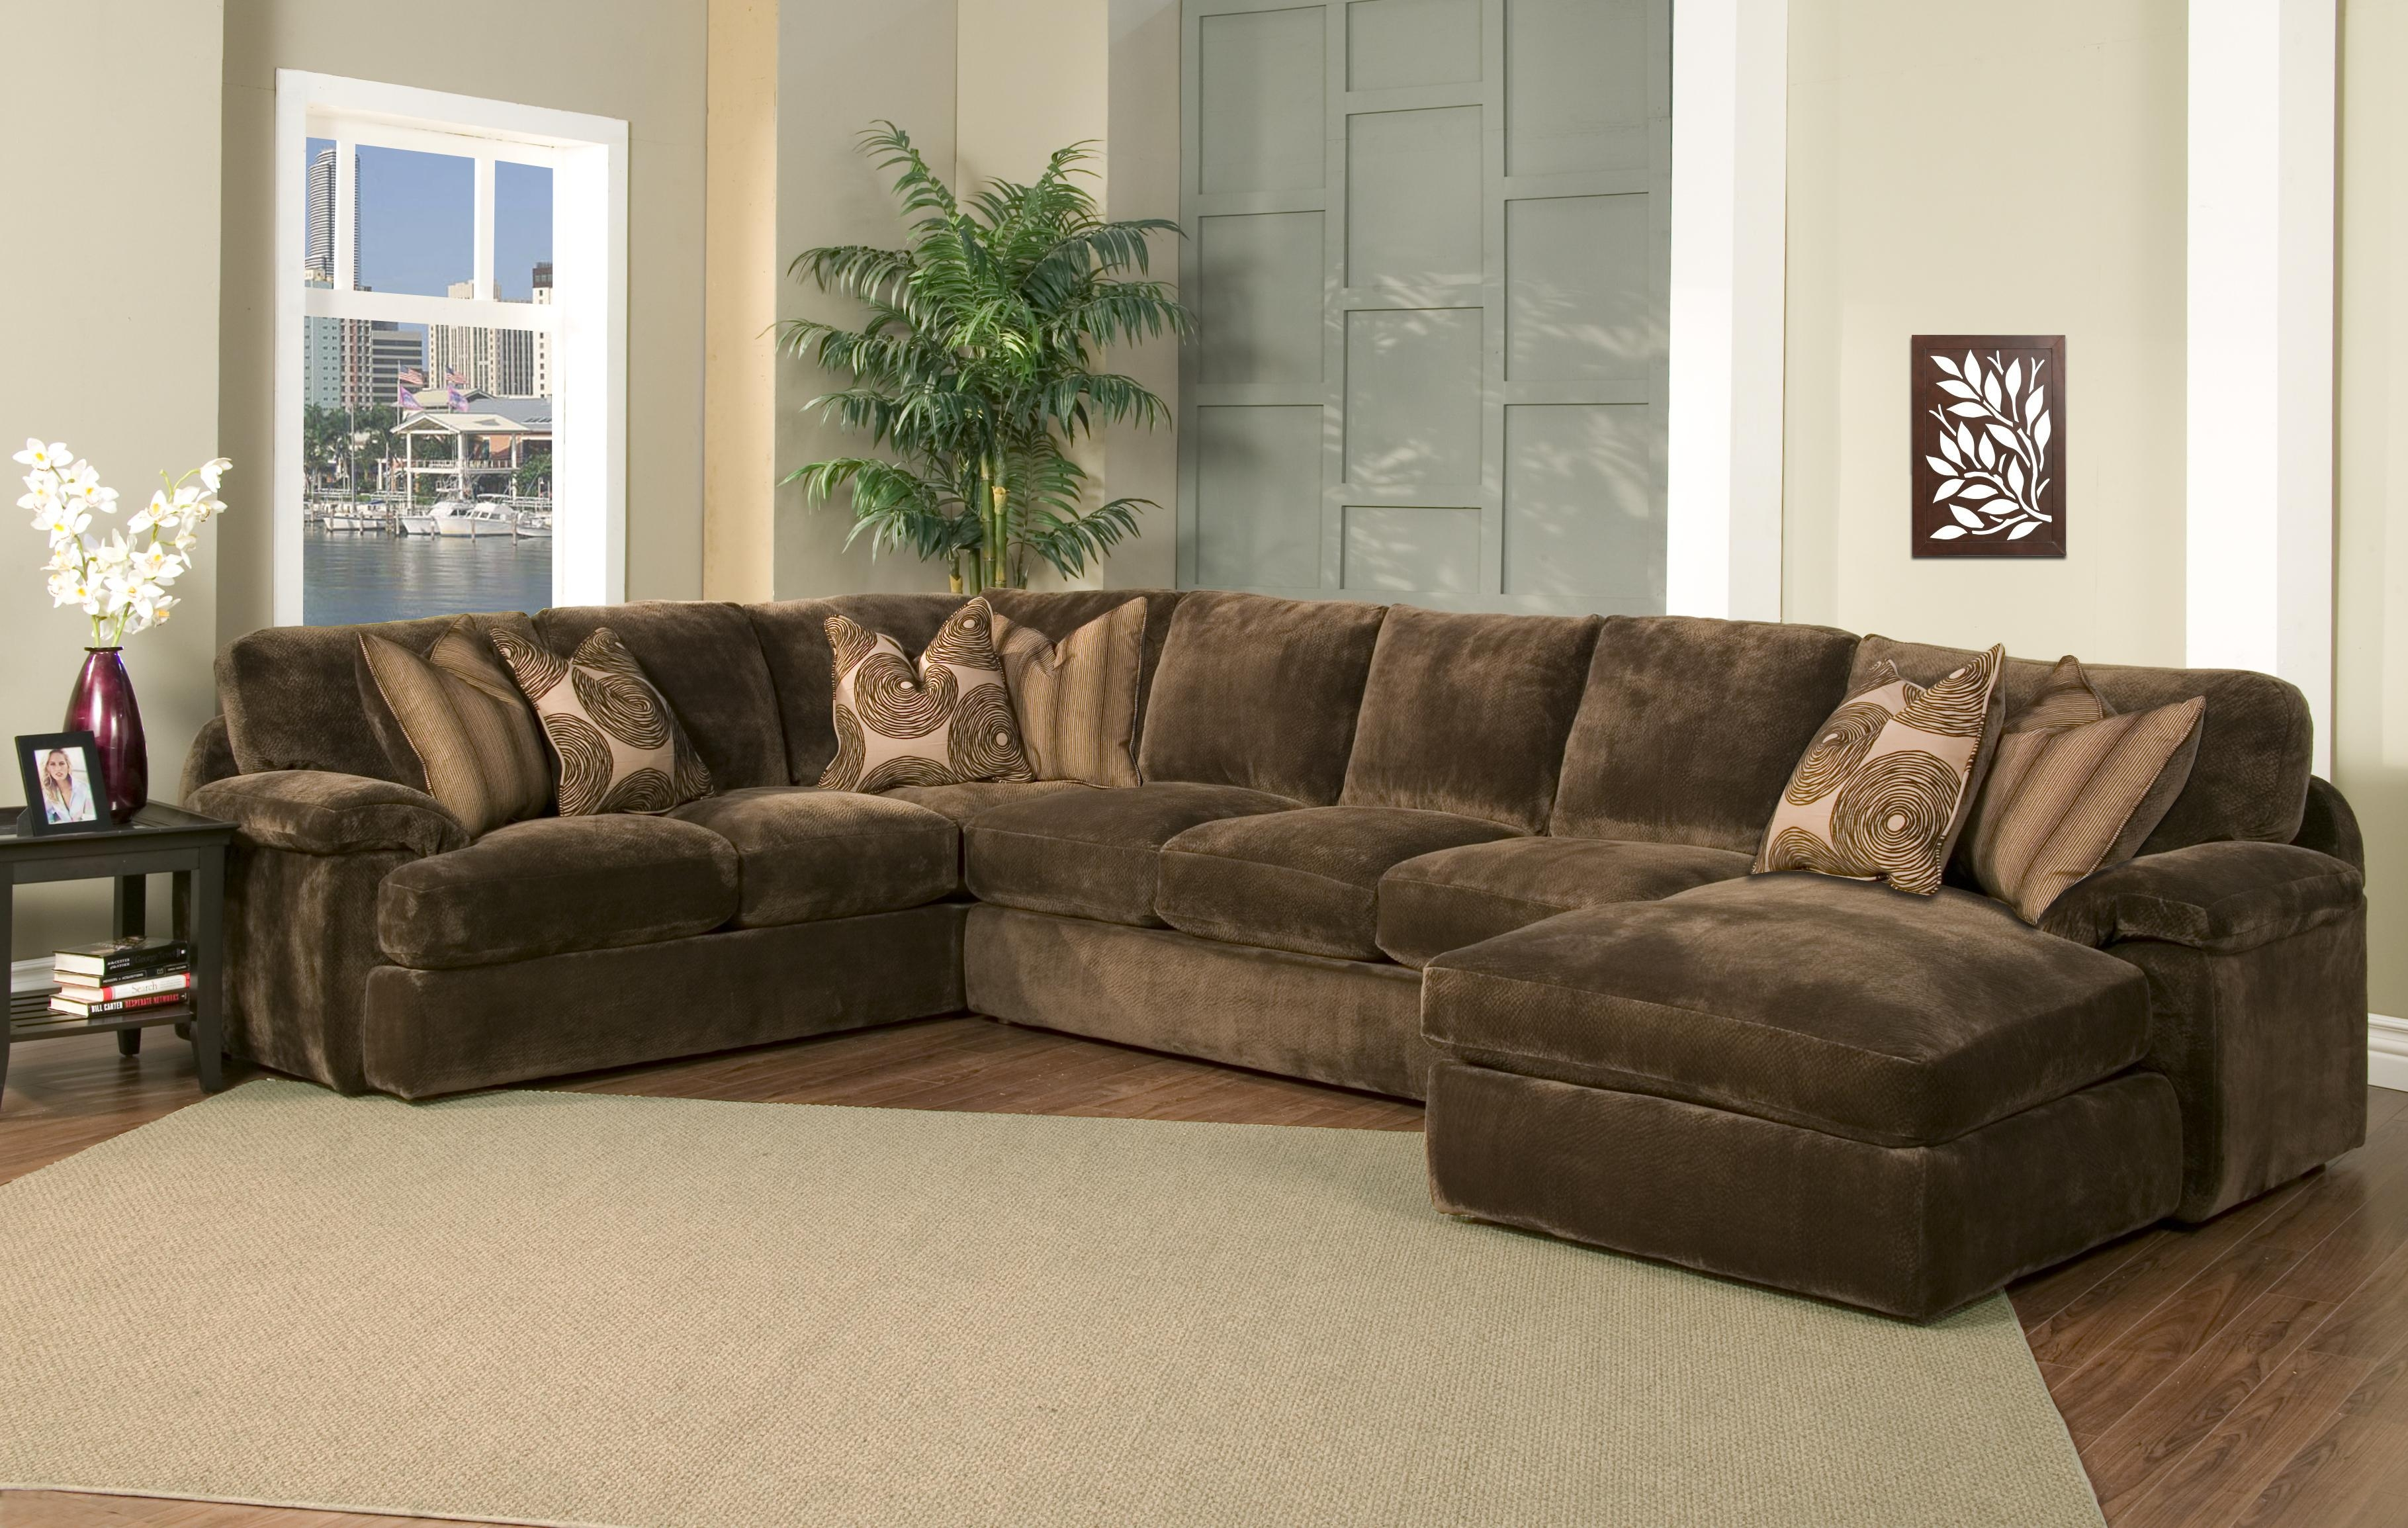 Robert Michaels Sofas And Sectionals Inside Chocolate Brown Sectional Sofa (Image 10 of 15)